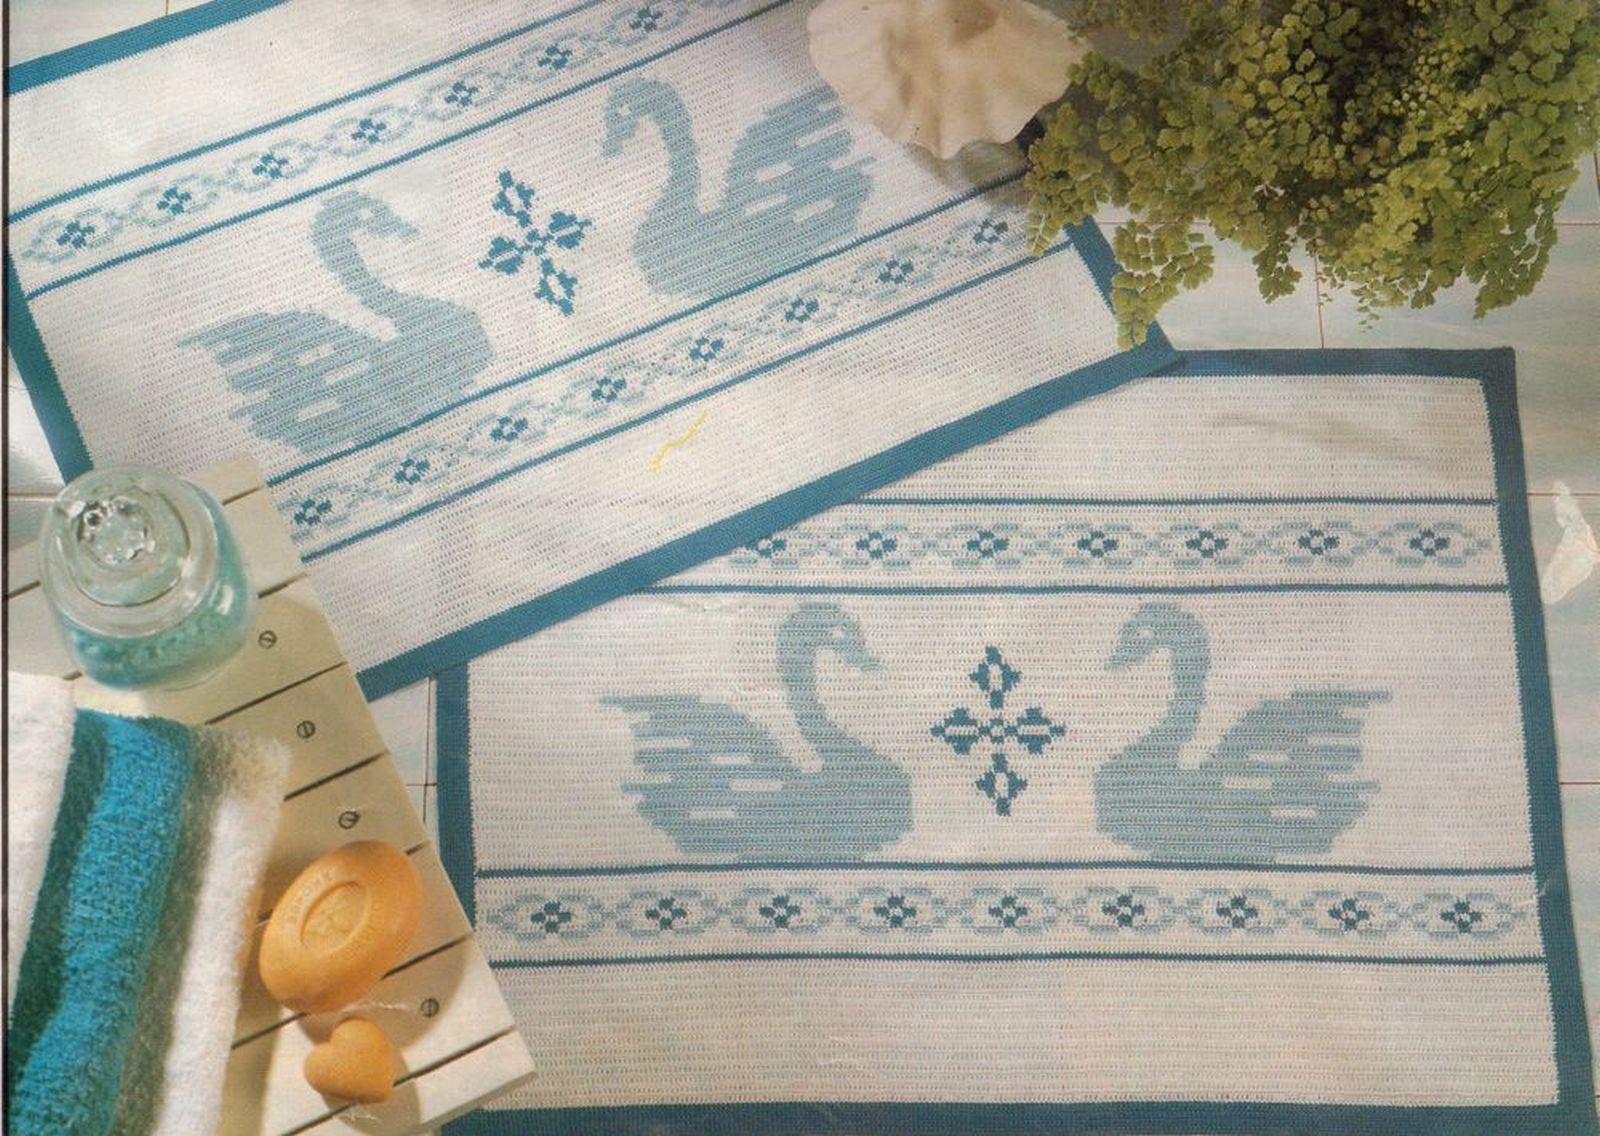 3X Bathroom Swan Mat Long Life Runner Entertainment Tablecloth Crochet Pattern image 3